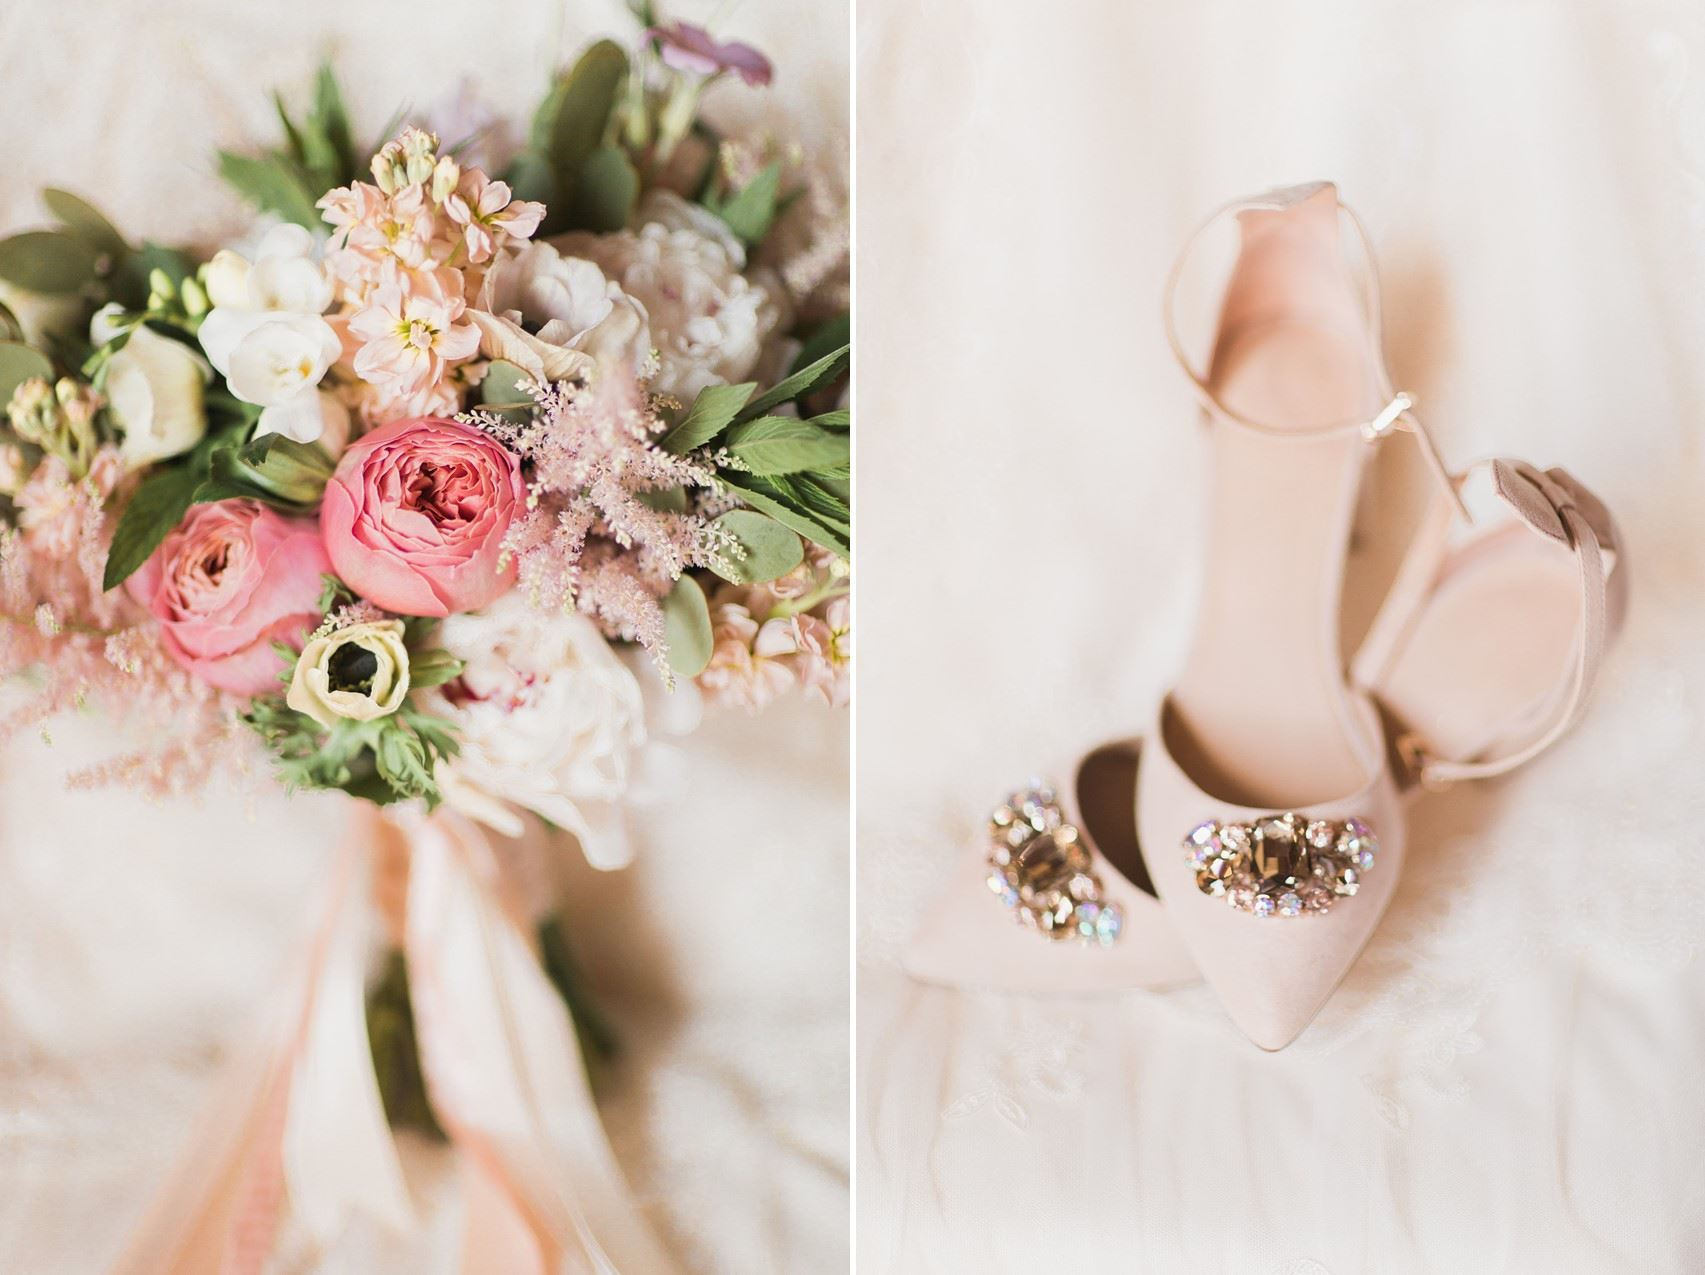 Pink Bridal Shoes A Modern Vintage Wedding With An Elegant Barn Reception